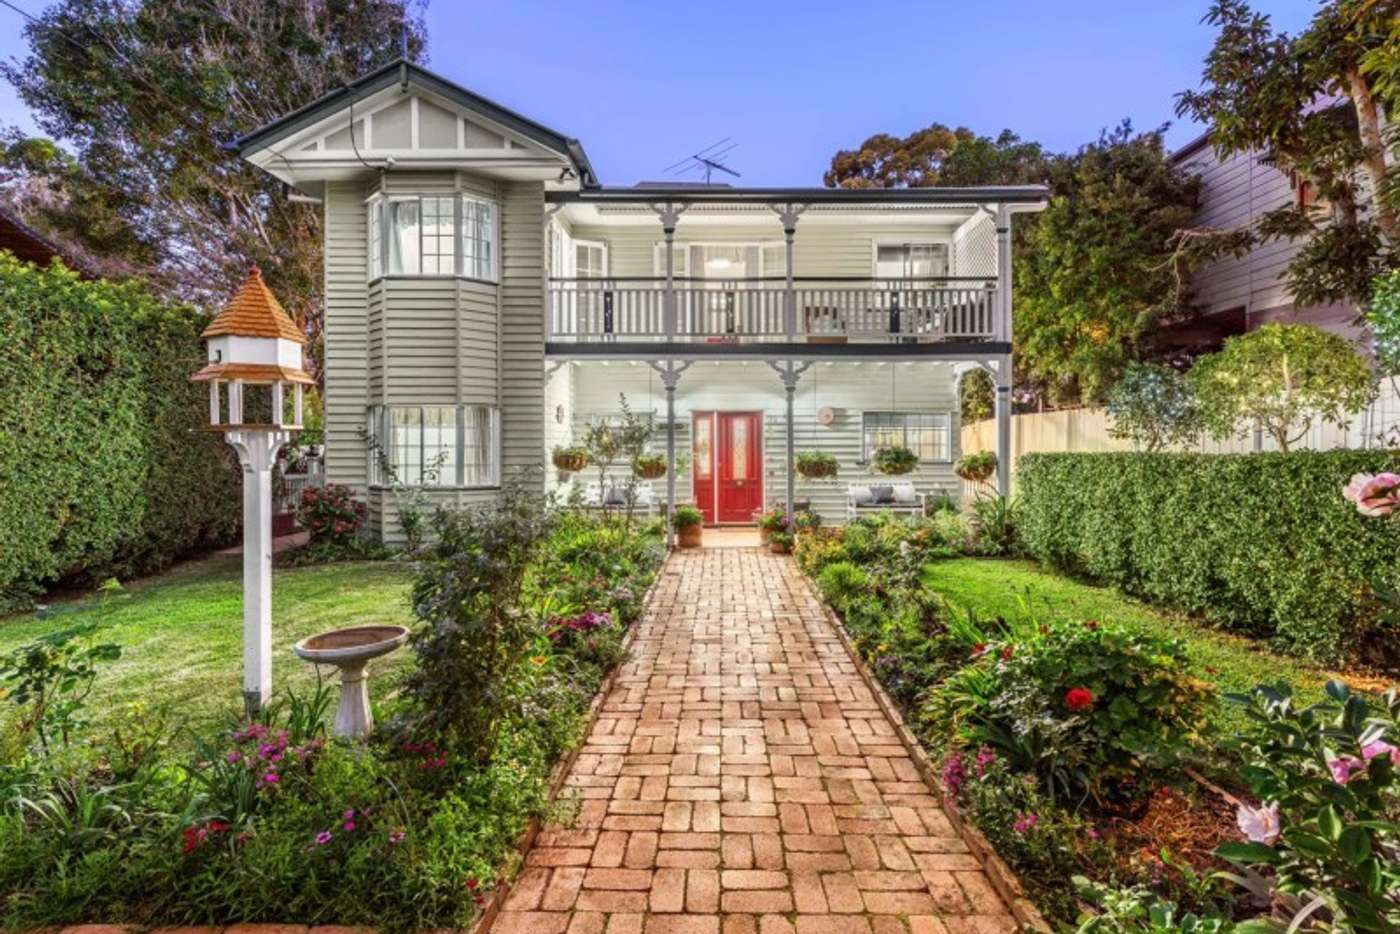 Main view of Homely house listing, 36 Willmington Street, Newmarket QLD 4051